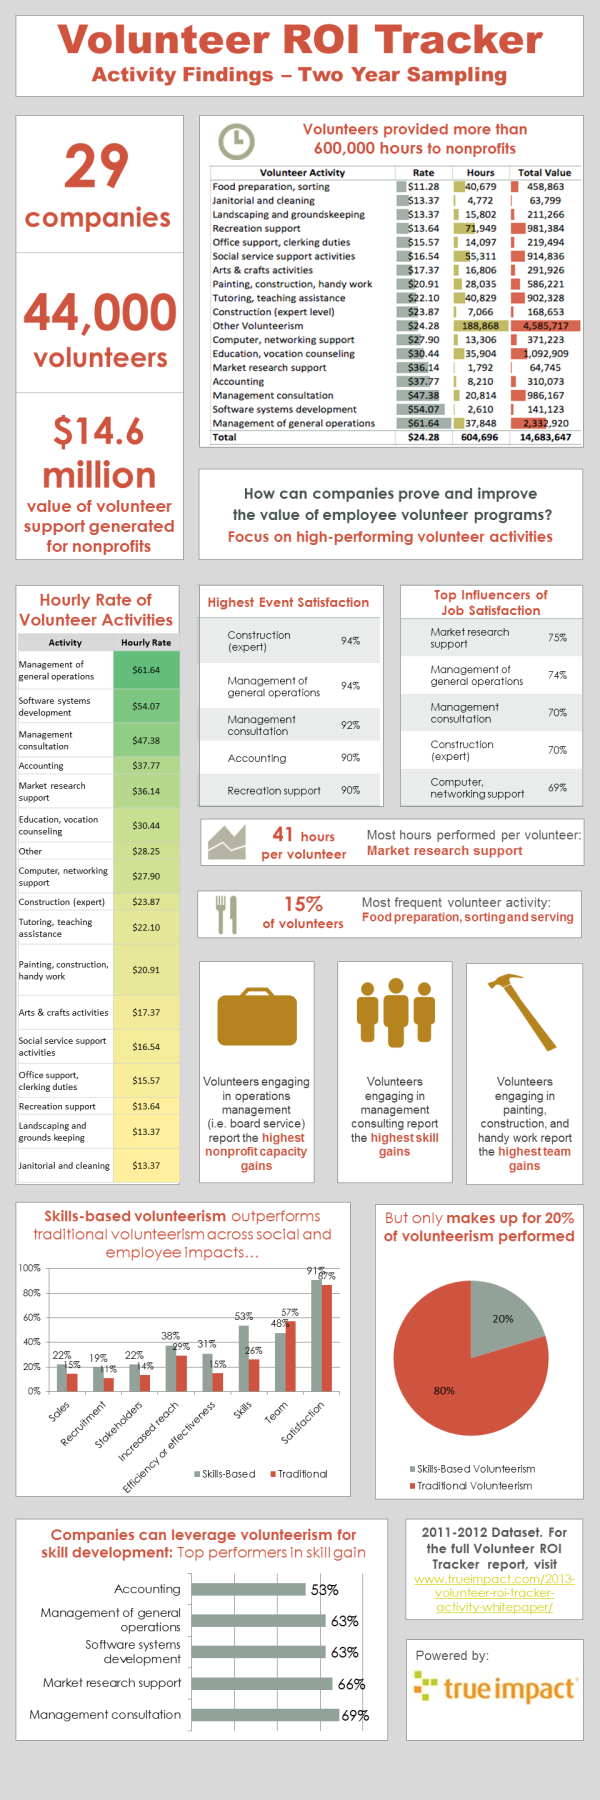 Volunteer ROI Tracker Findings Graphic resized 600